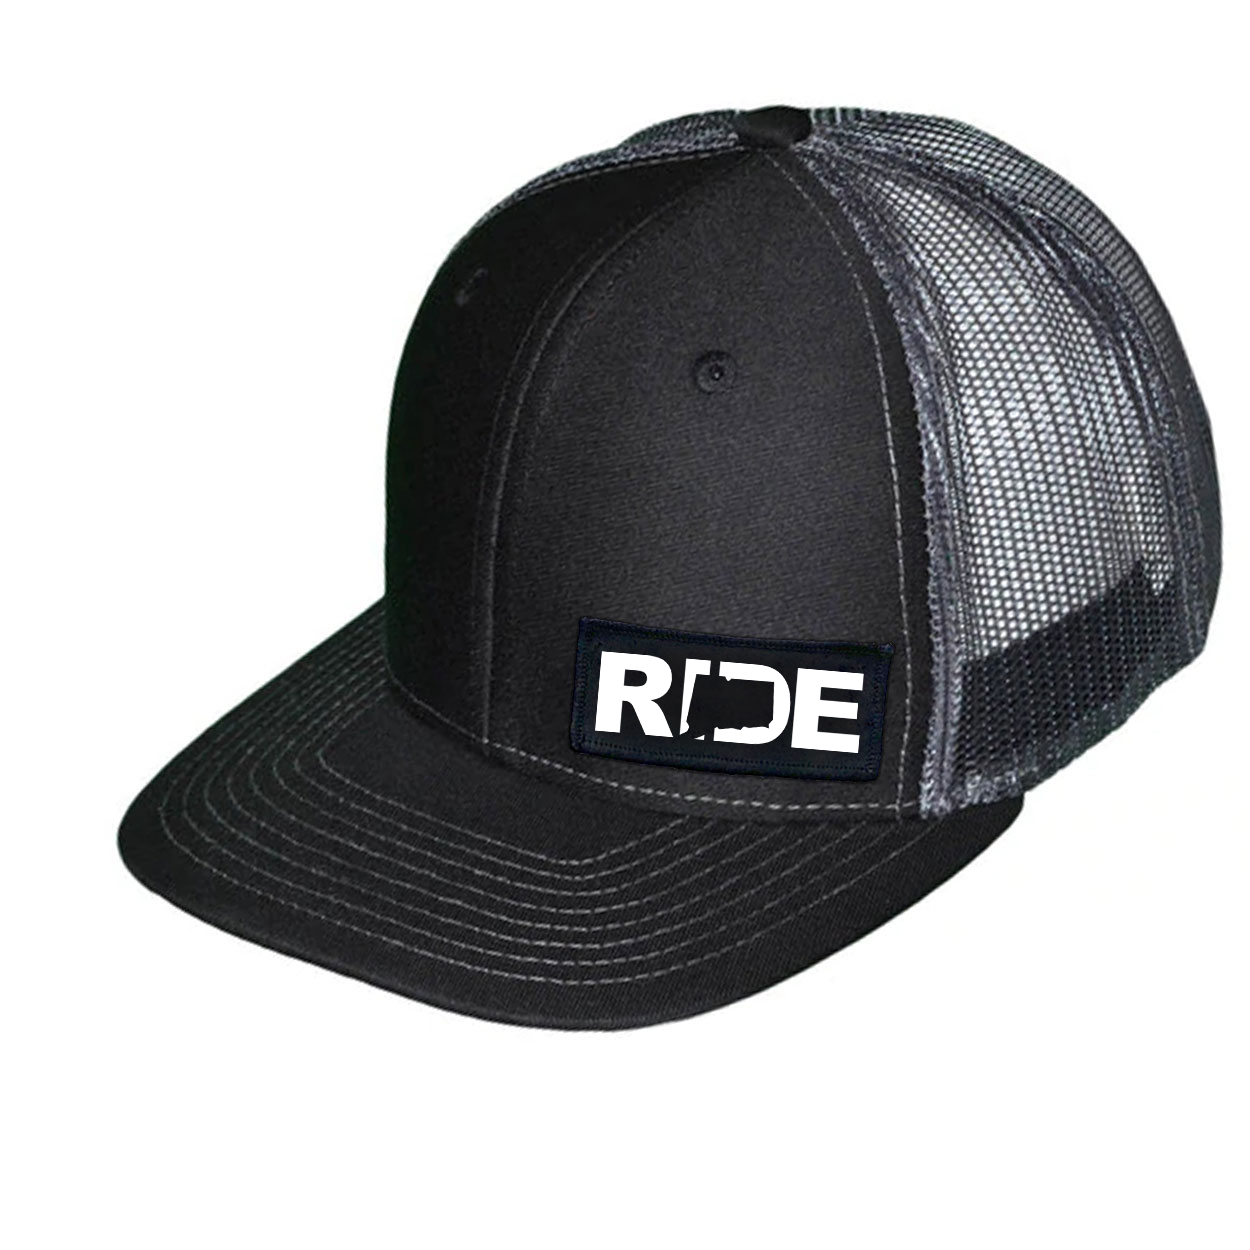 Ride Connecticut Night Out Woven Patch Snapback Trucker Hat Black/Dark Gray (White Logo)